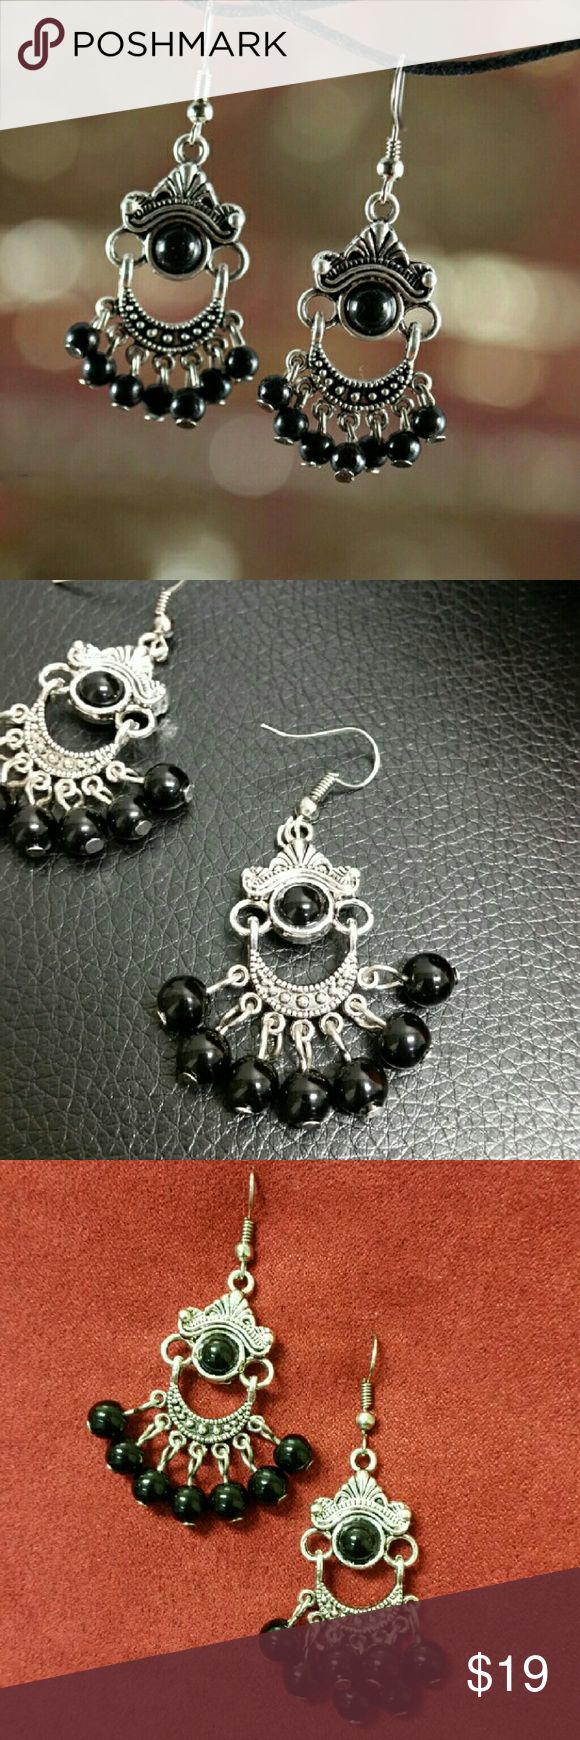 *weekend sale* Dangling earrings w/ black beads Unique earrings with dangling black beads, and delicate detailing on the metal. Use to finish a cute boho look that will make you stand out. Jewelry Earrings